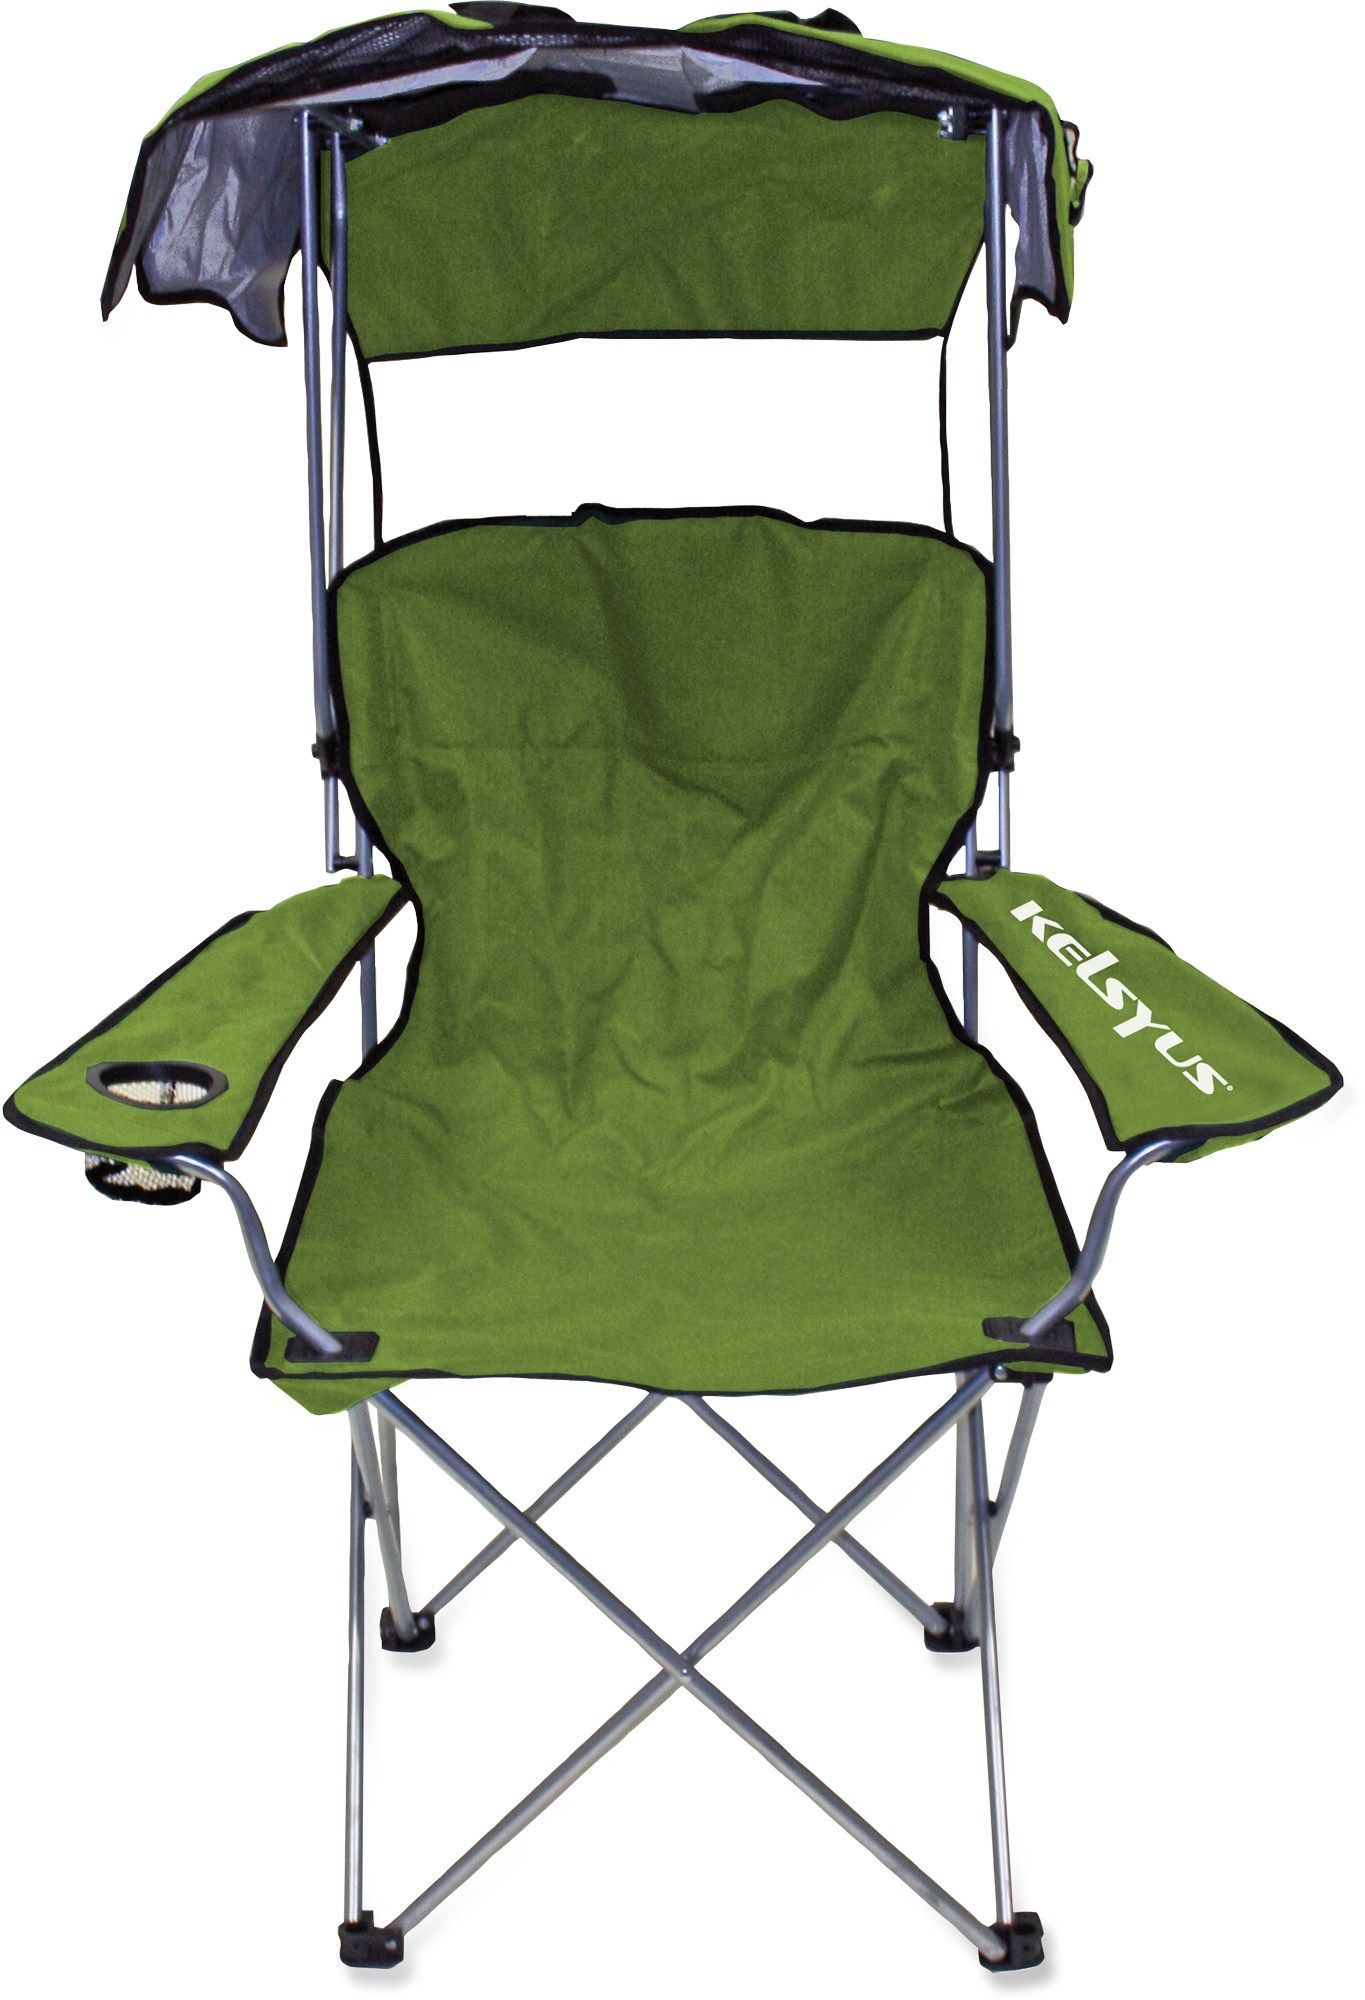 Kelsyus Canopy Chair Outdoor Chairs Original Backpack